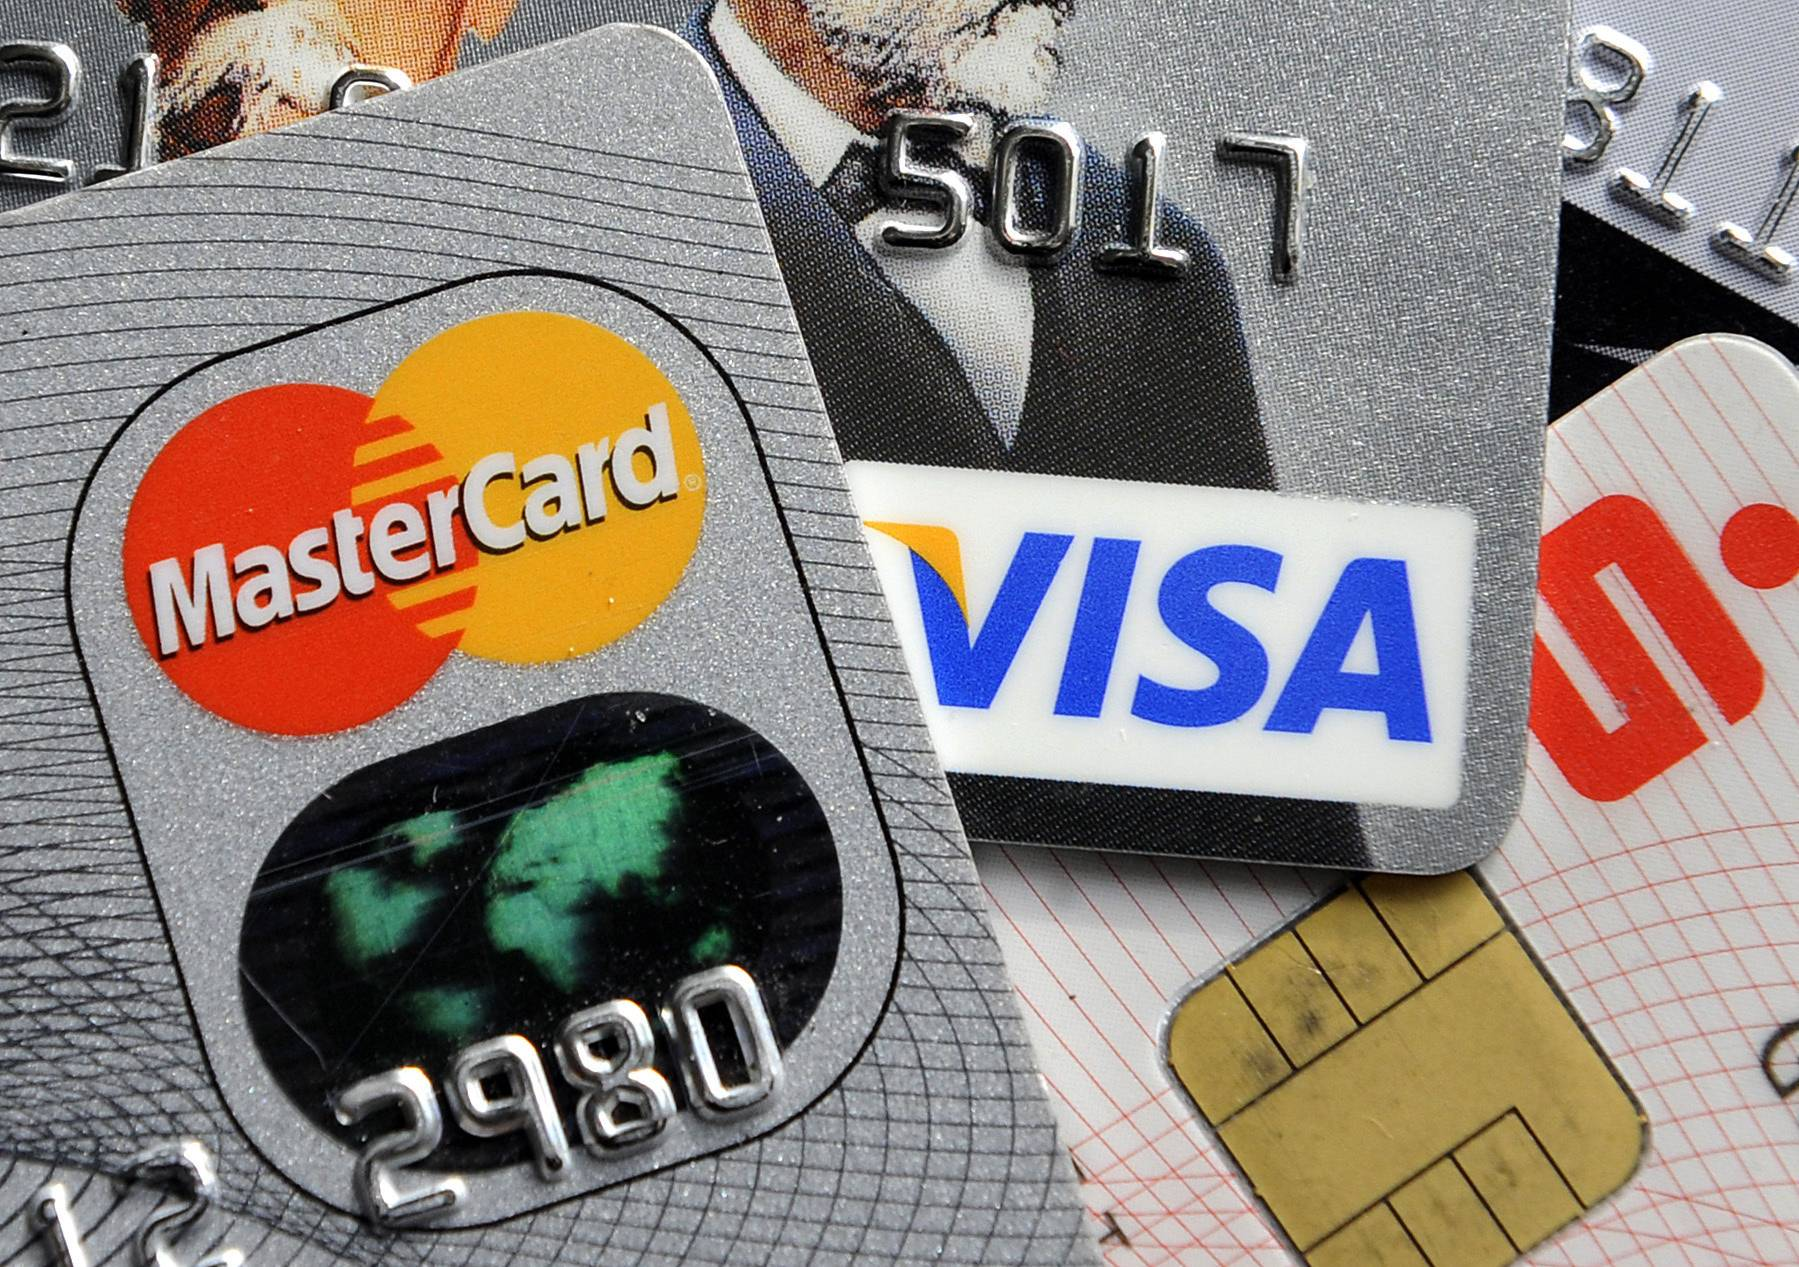 Verified high-limit credit cards are selling on the dark web for the bitcoin equivalent of about $10 to $20, according to an annual report on cybercrime by Secureworks, a unit of Dell Inc. For scammers on a budget, there's unverified stolen credit card data, which comes out to pennies a card when bought in bulk.